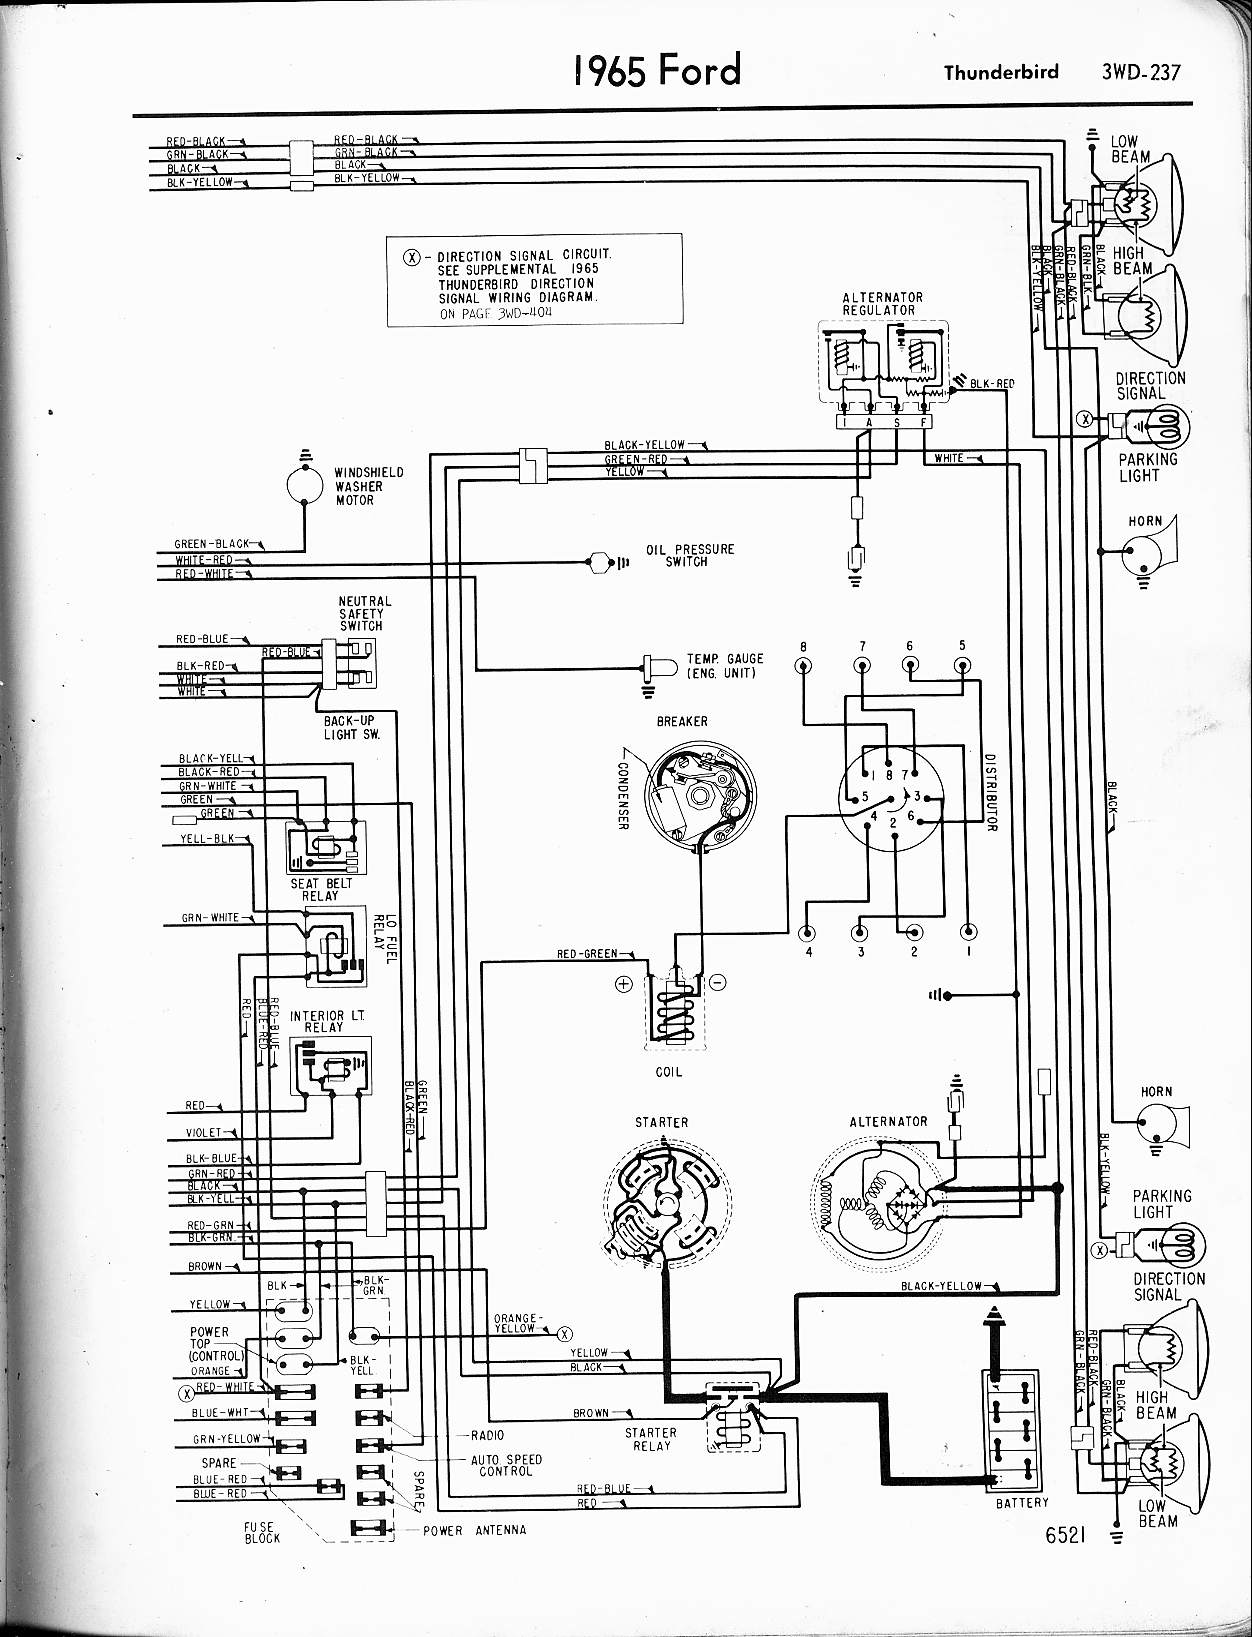 MWire5765 237 57 65 ford wiring diagrams 65 Mustang Alternator Wiring at creativeand.co